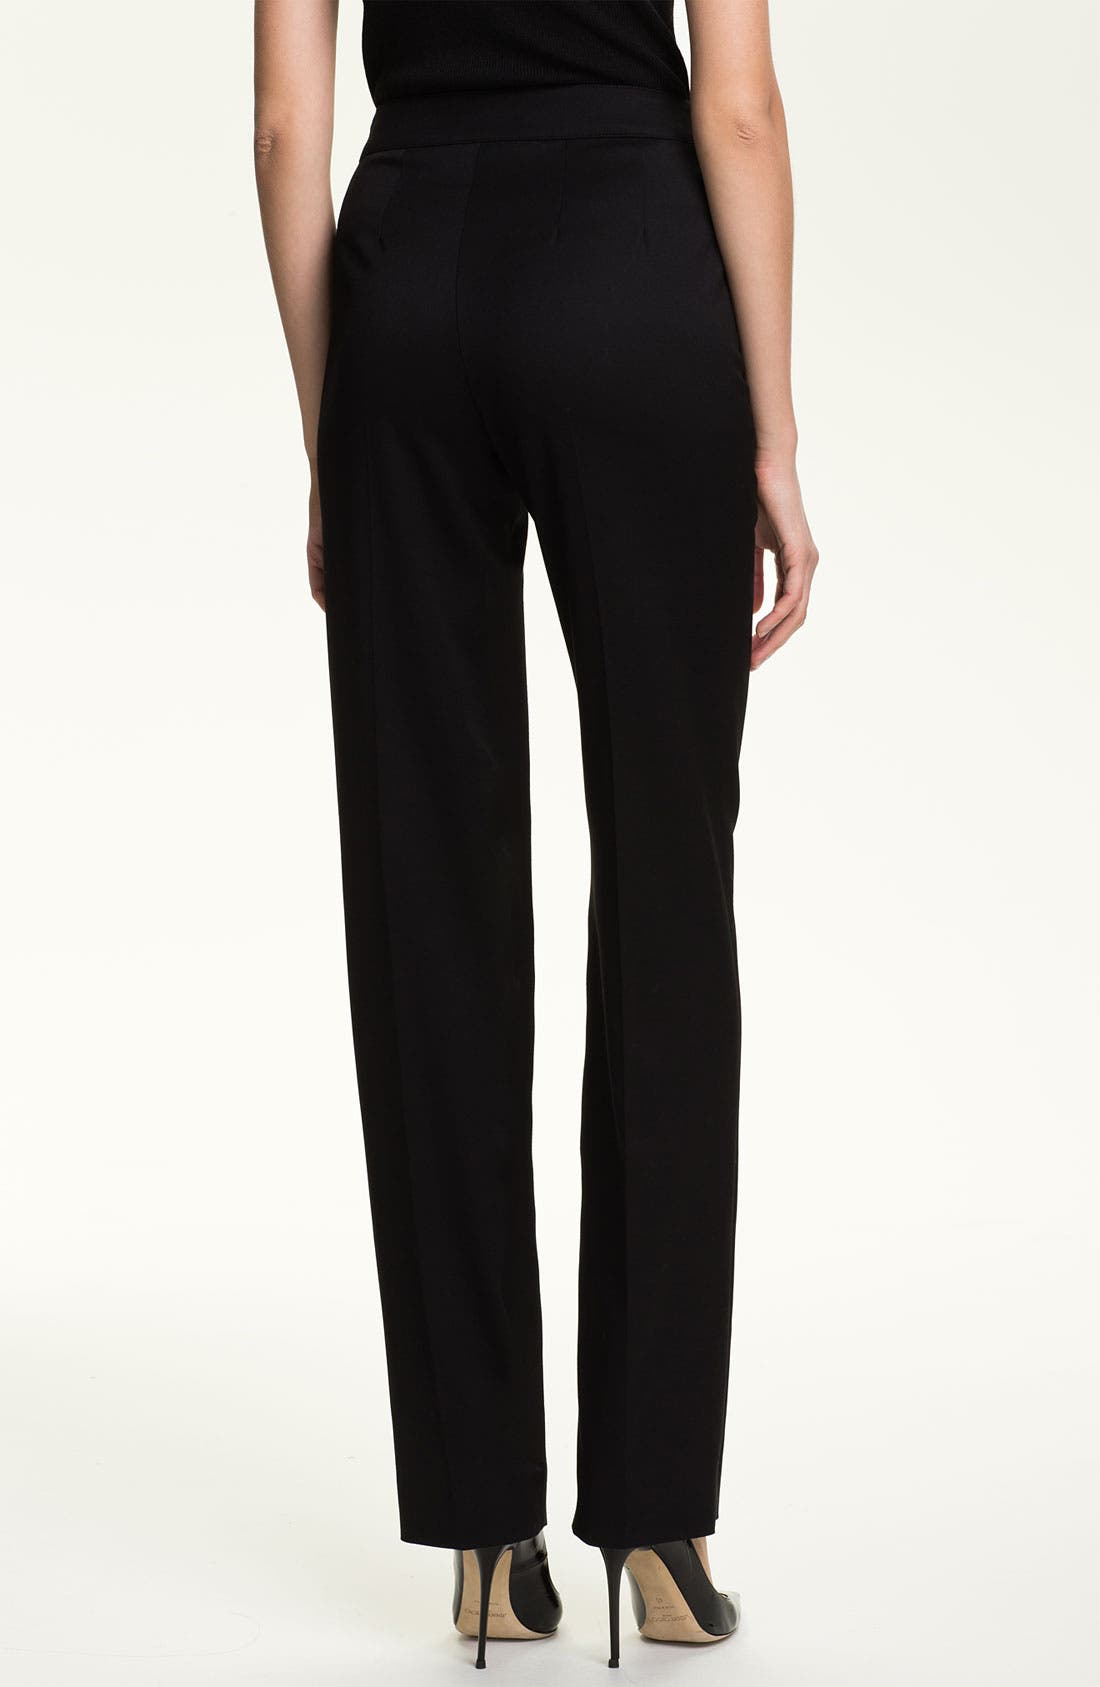 Alternate Image 3  - St. John Collection 'Diana' Stretch Venetian Wool Pants